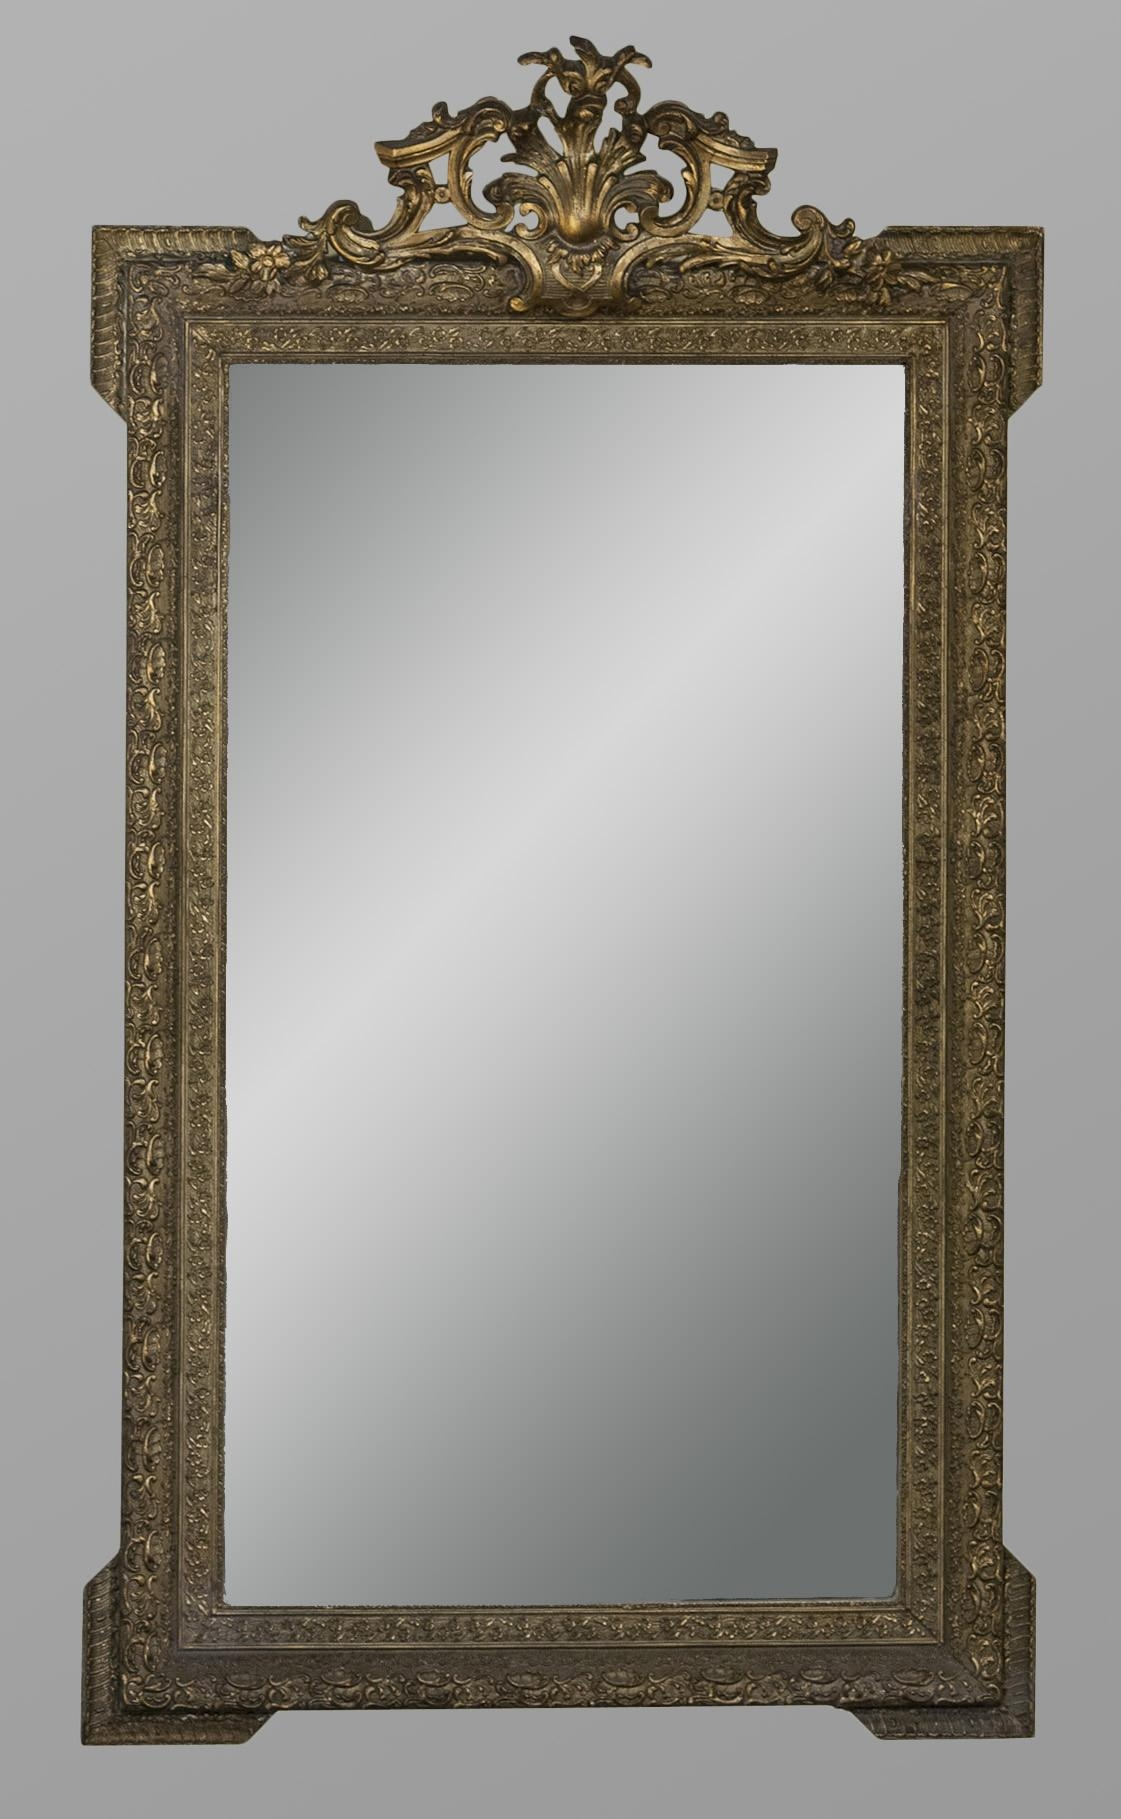 Victorian Style Mirrors Images – Reverse Search For Victorian Style Mirrors (Photo 11 of 20)